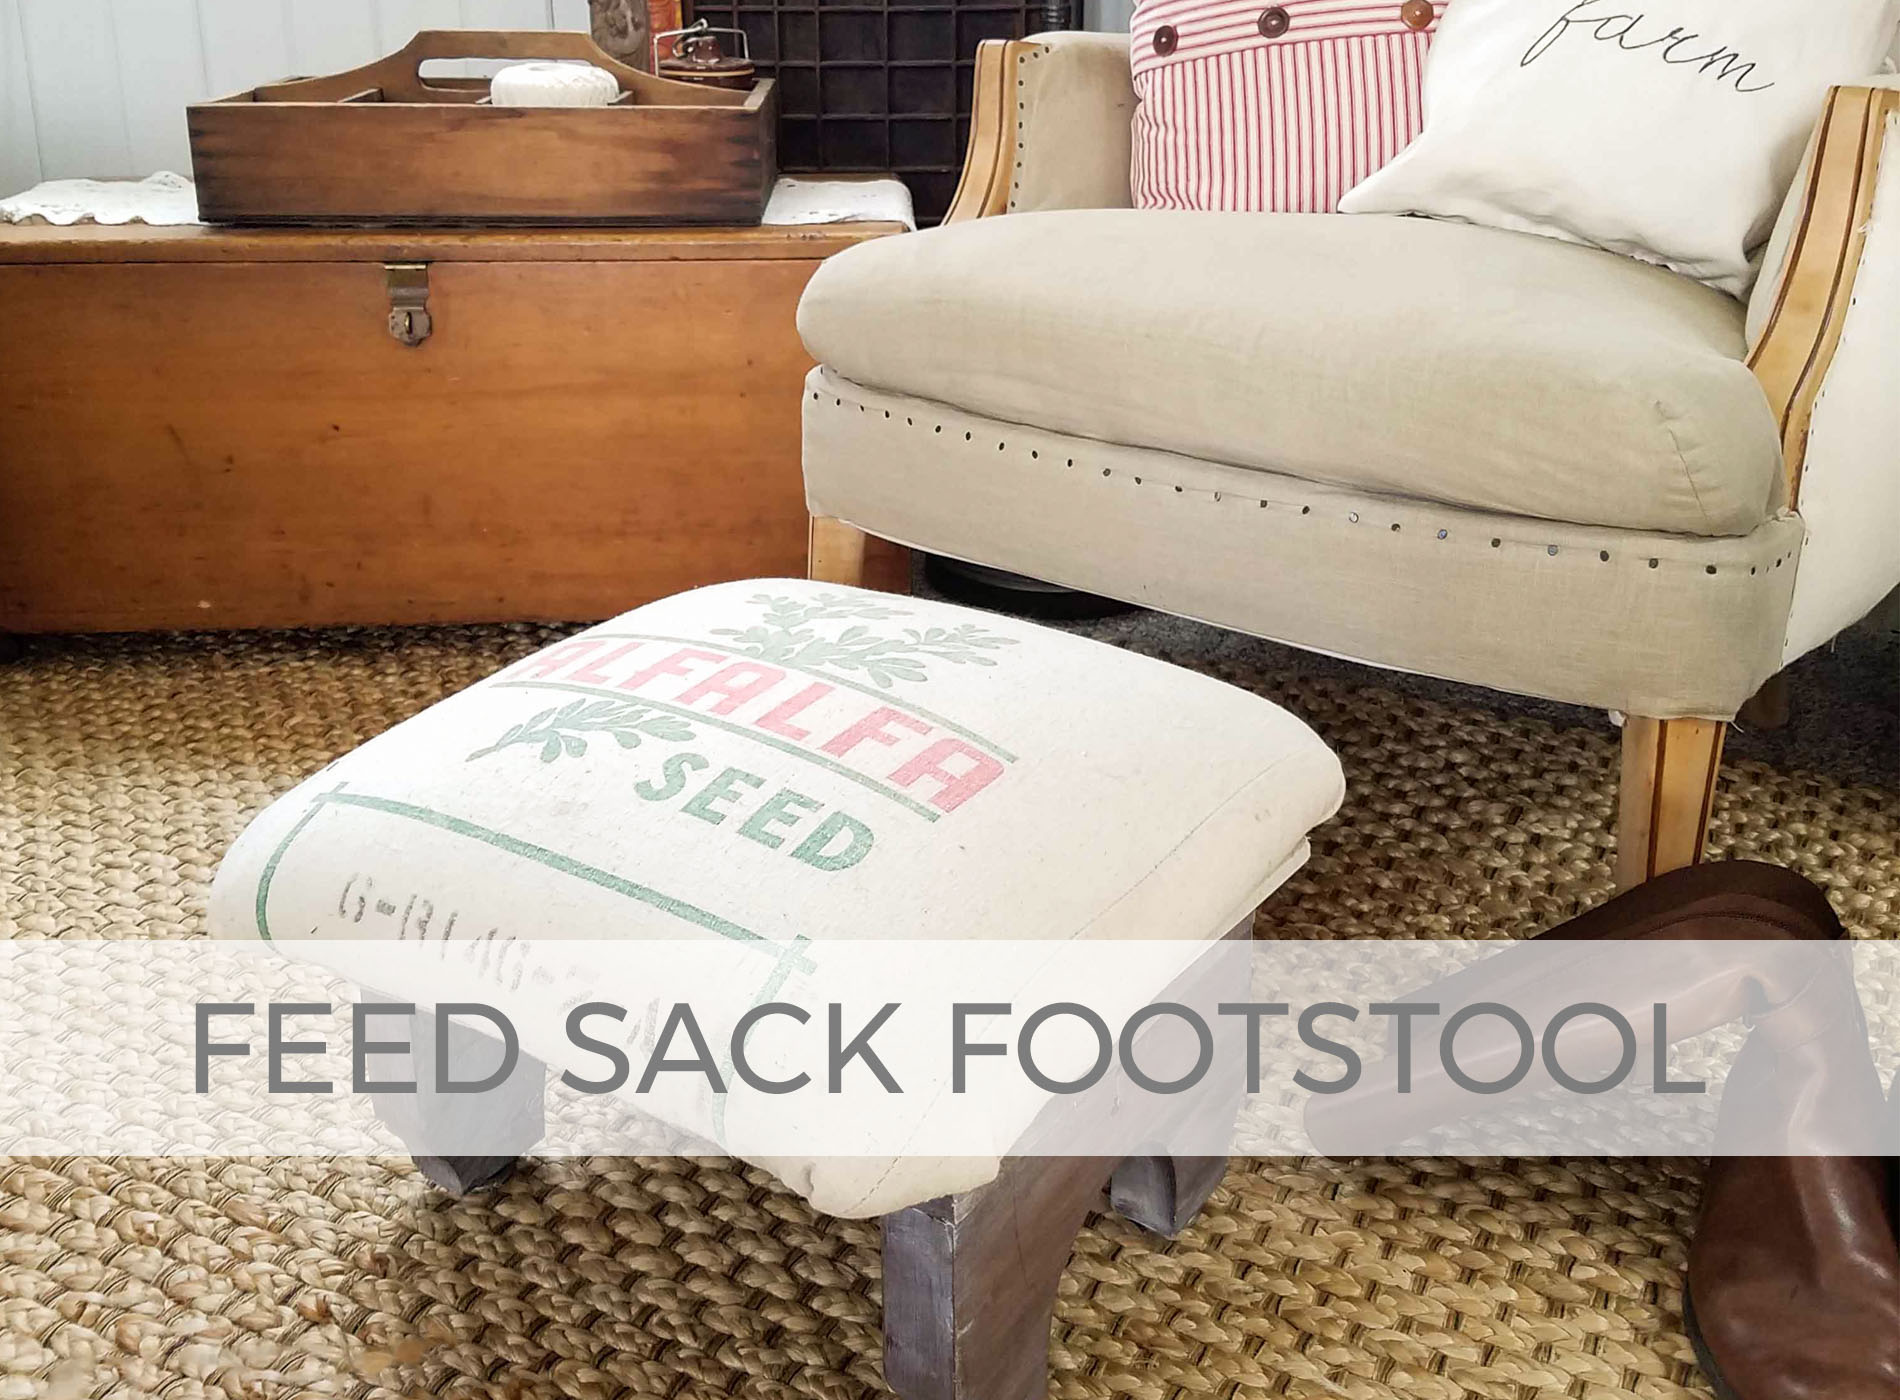 Feed Sack Footstool by Larissa of Prodigal Pieces | prodigalpieces.com